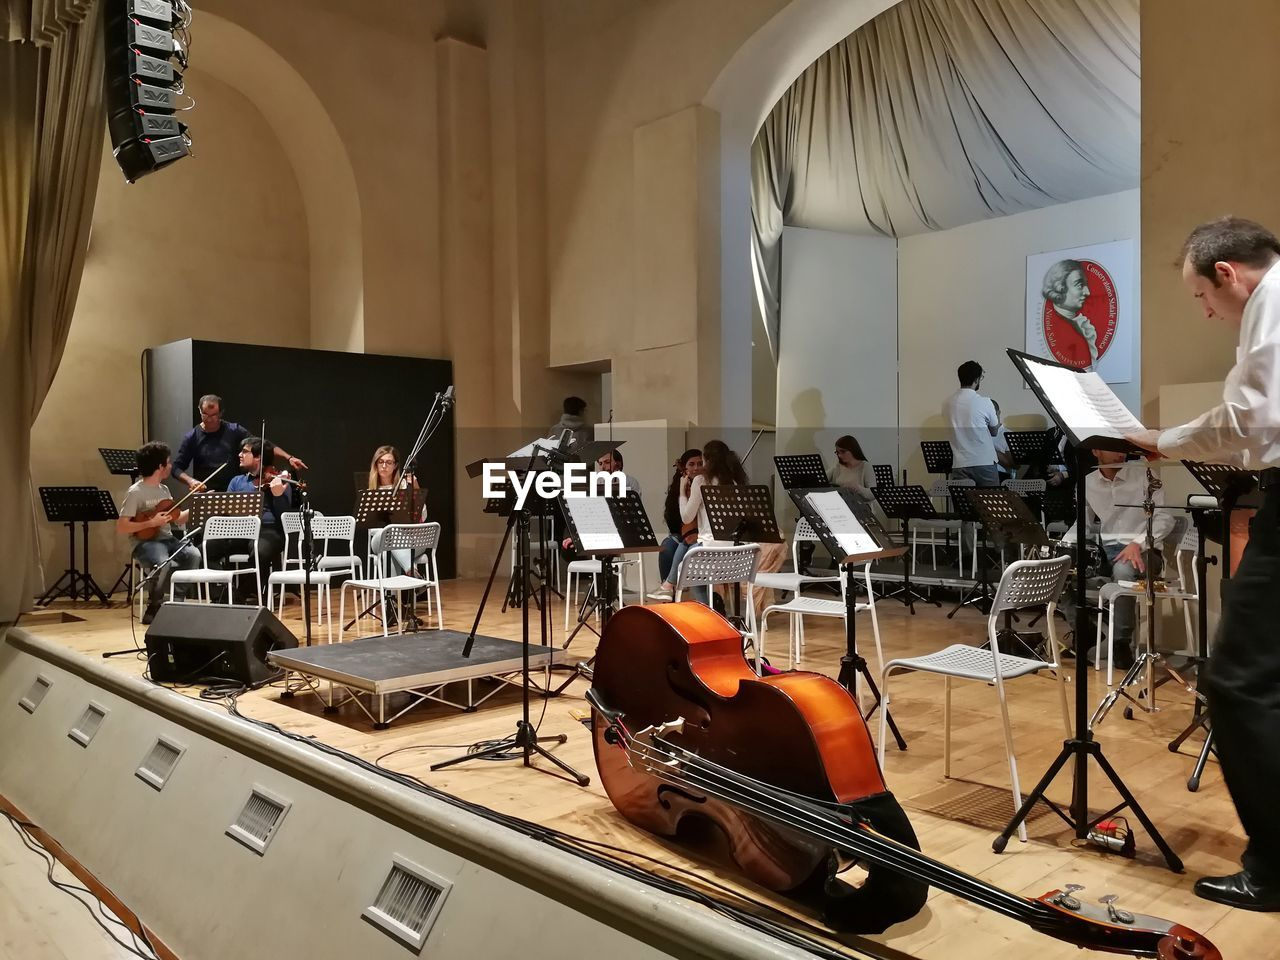 musical instrument, group of people, music, arts culture and entertainment, musical equipment, artist, men, real people, occupation, performance, musician, string instrument, sitting, indoors, group, large group of people, women, sheet music, crowd, stage, orchestra, entertainment occupation